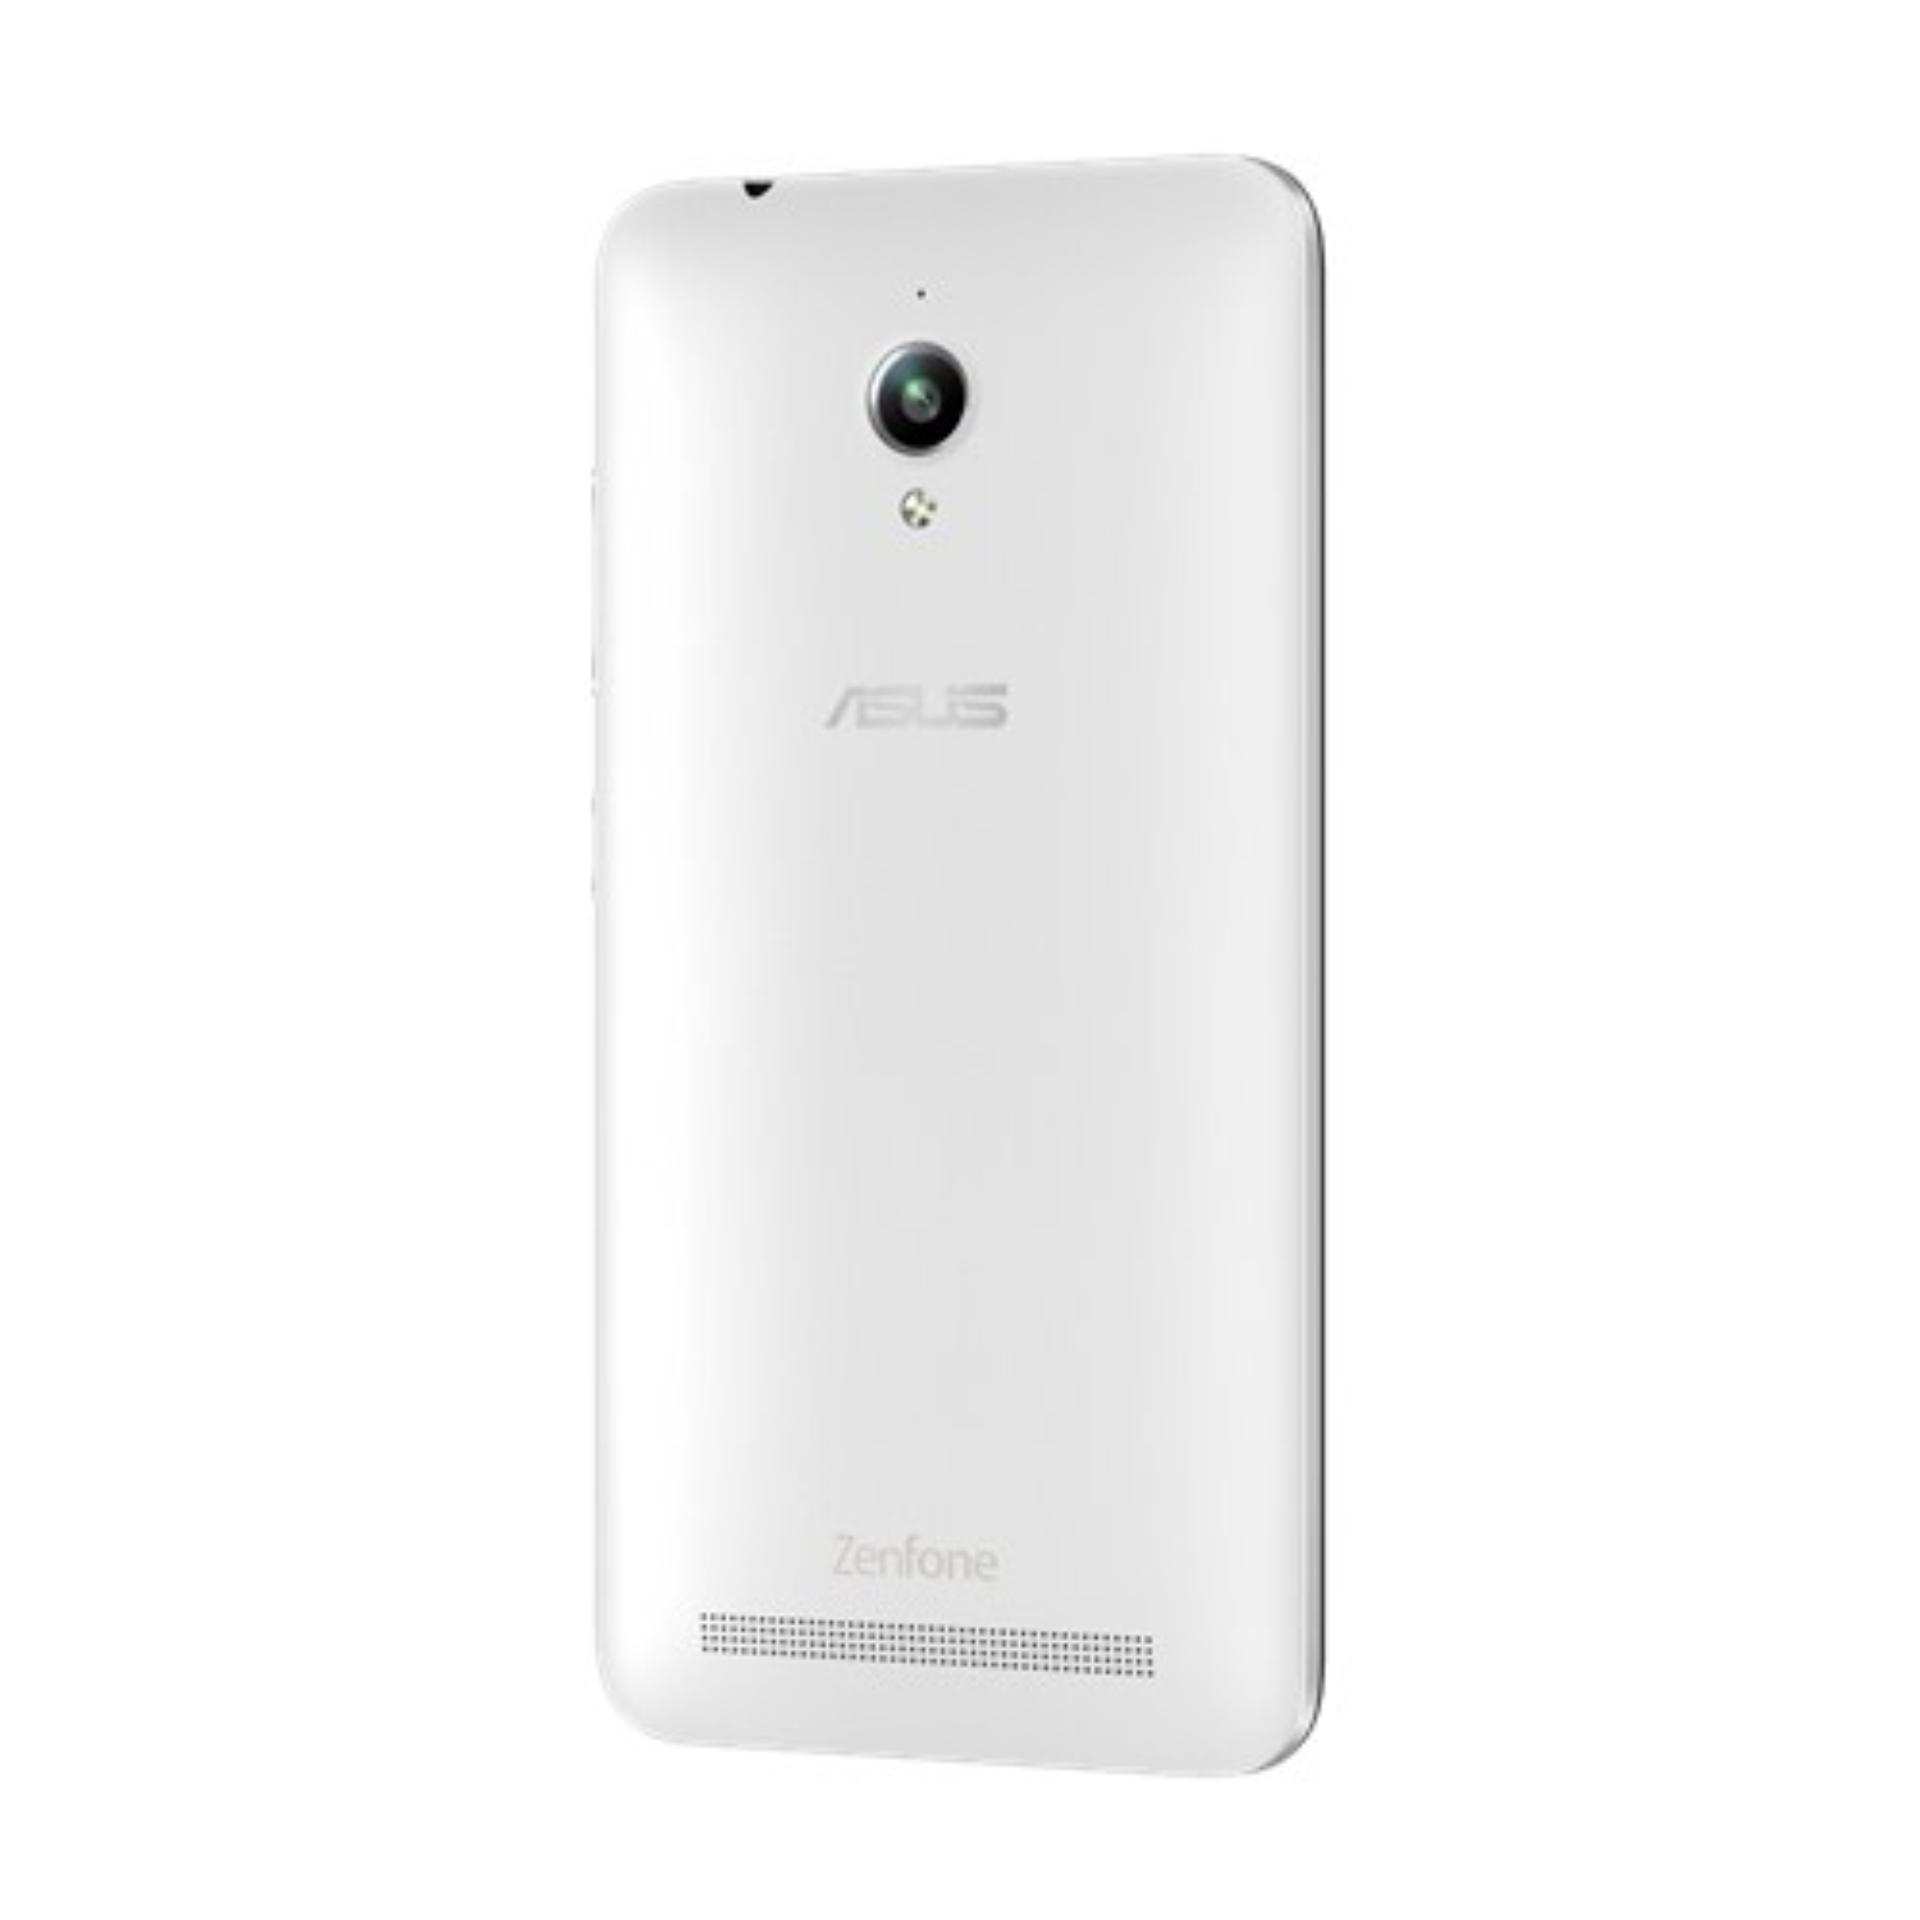 ASUS Zenfone Go 5.0 ZC500TG 16GB - Local Set (White)